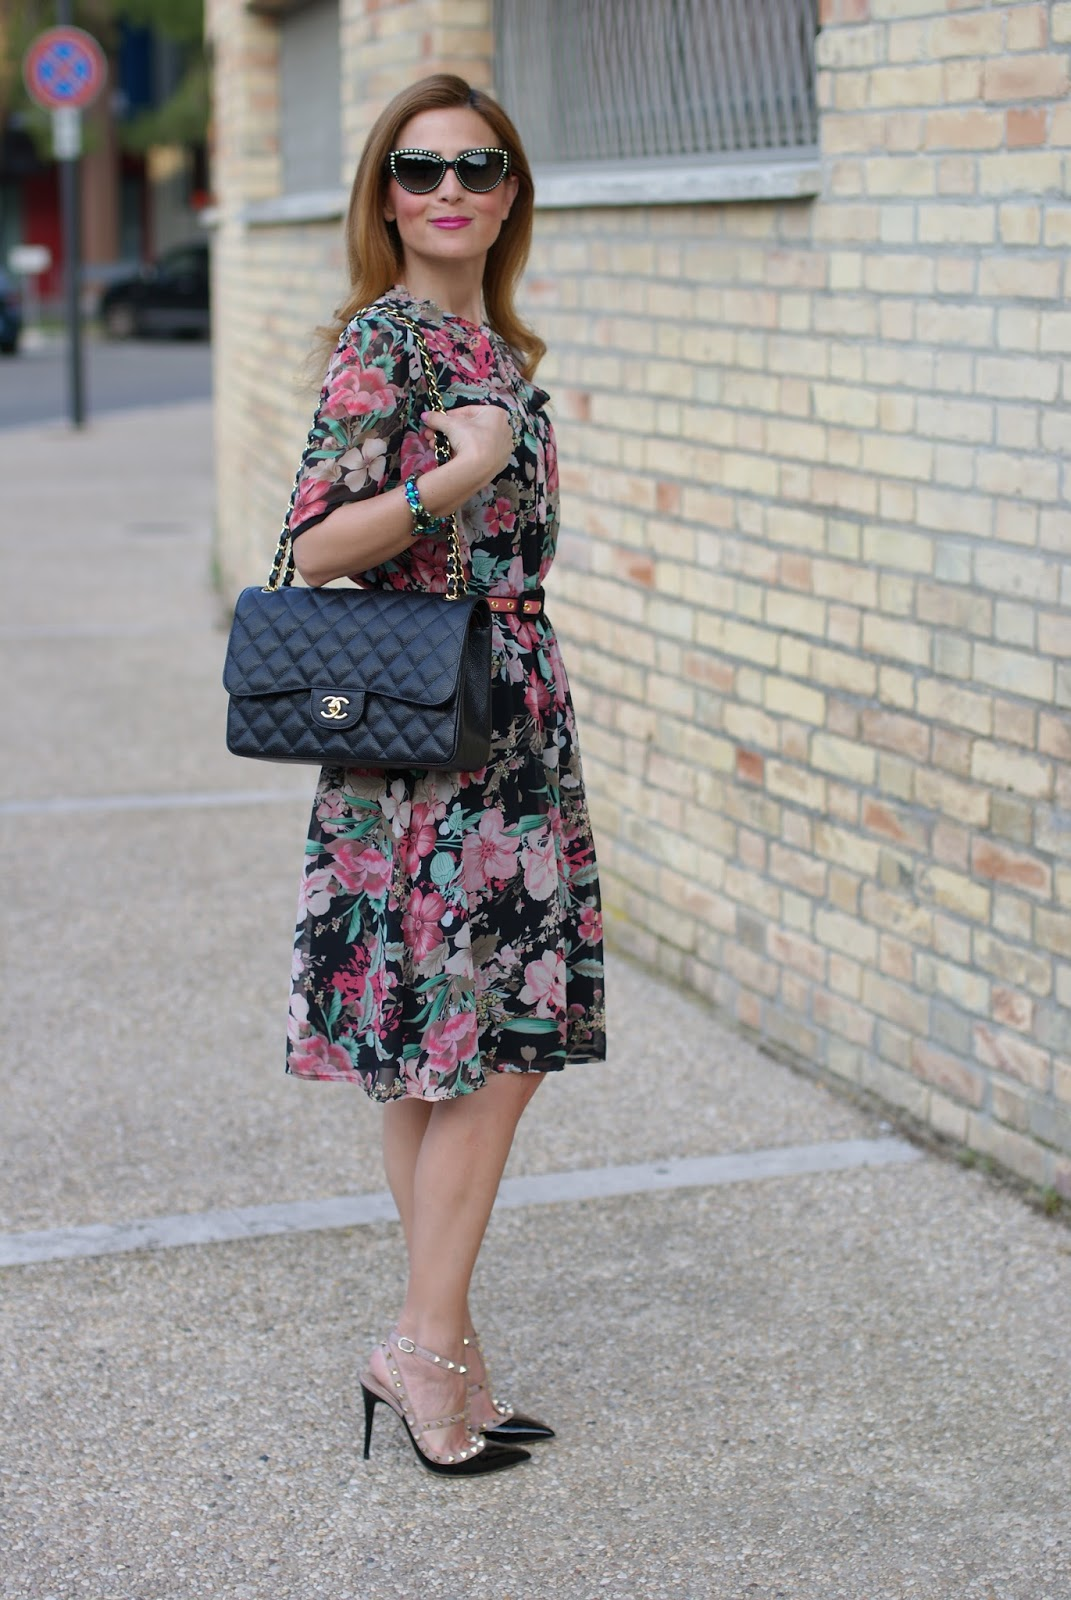 Floral bon ton dress with Valentino Rockstud heels and Chanel bag on Fashion and Cookies fashion blog, fashion blogger style